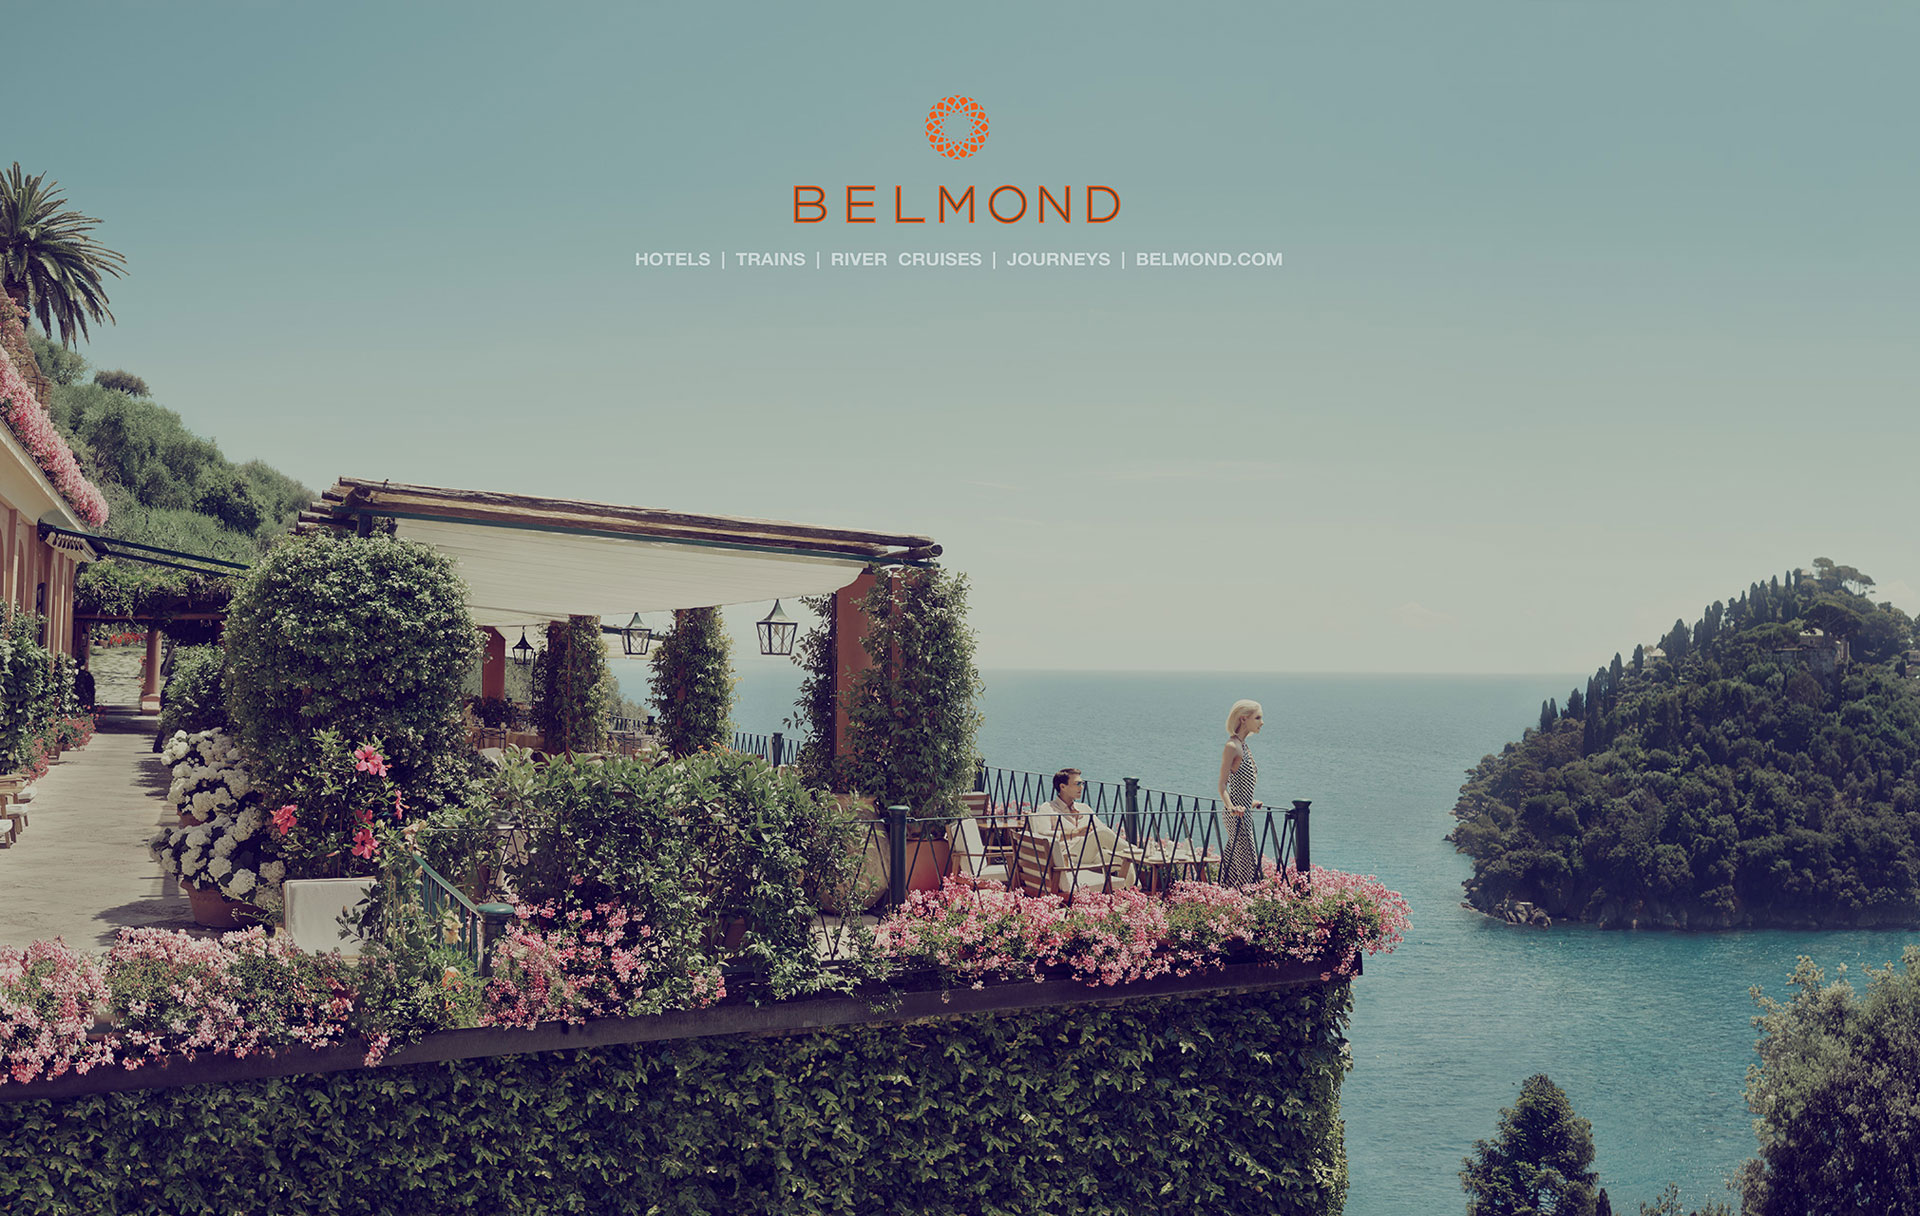 BELMOND HOTELS | AGENCY SACKS